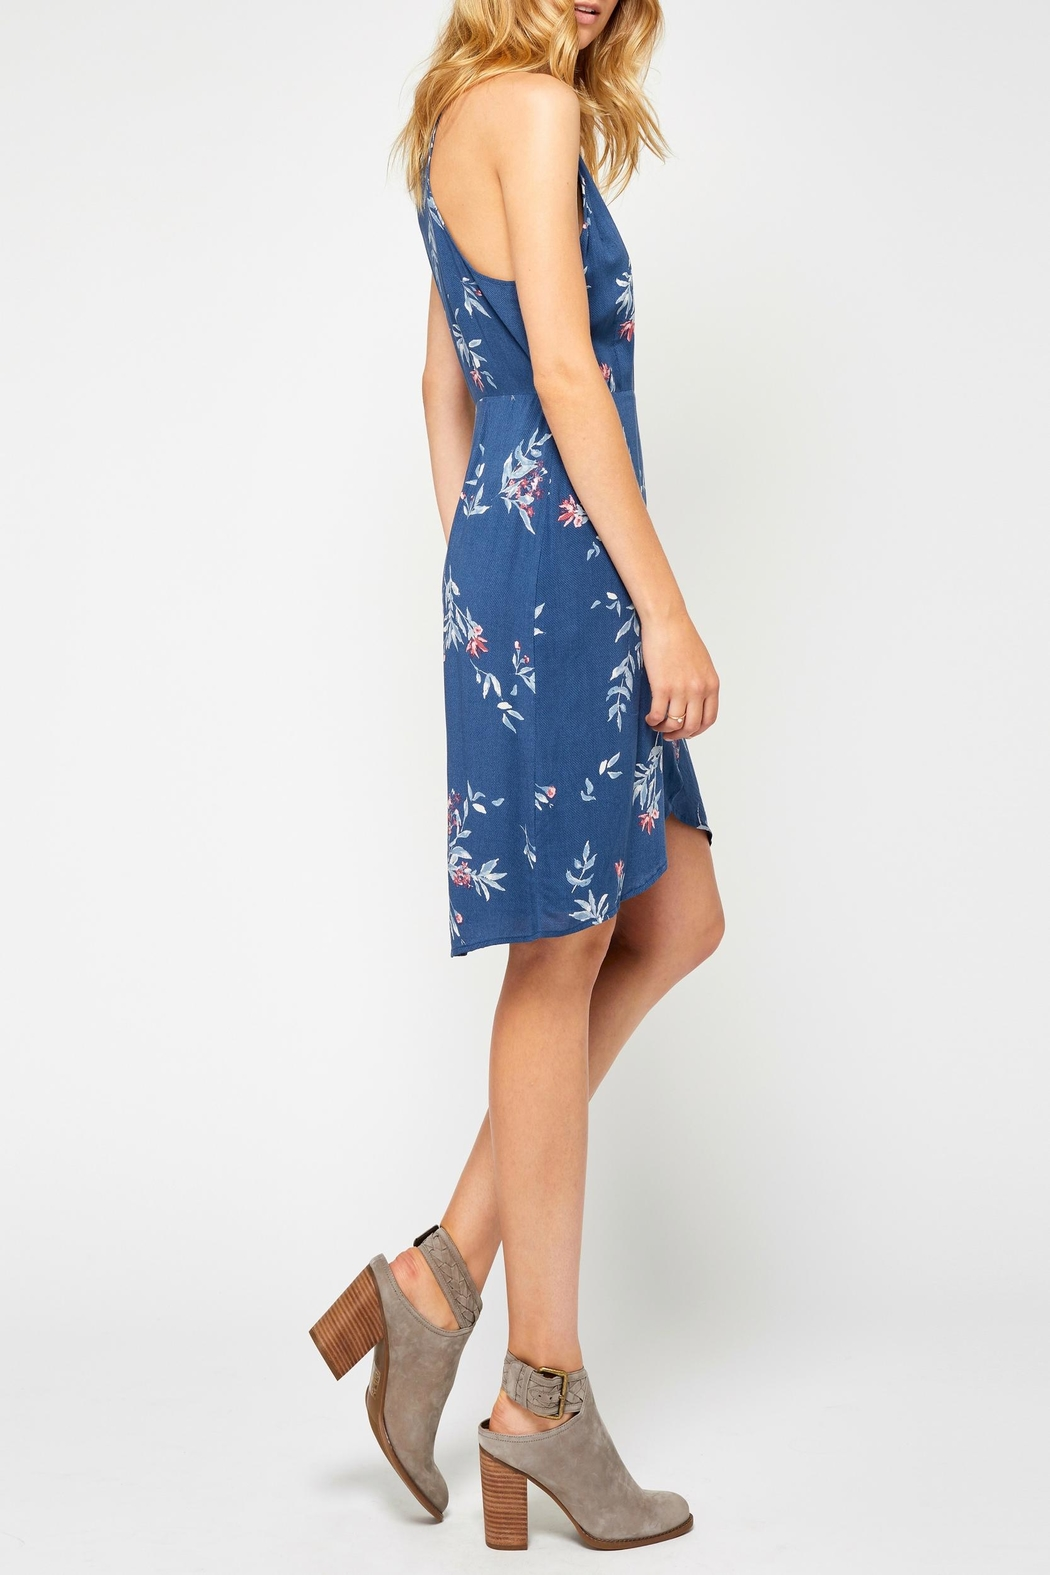 Gentle Fawn Blue Print Dress - Front Full Image